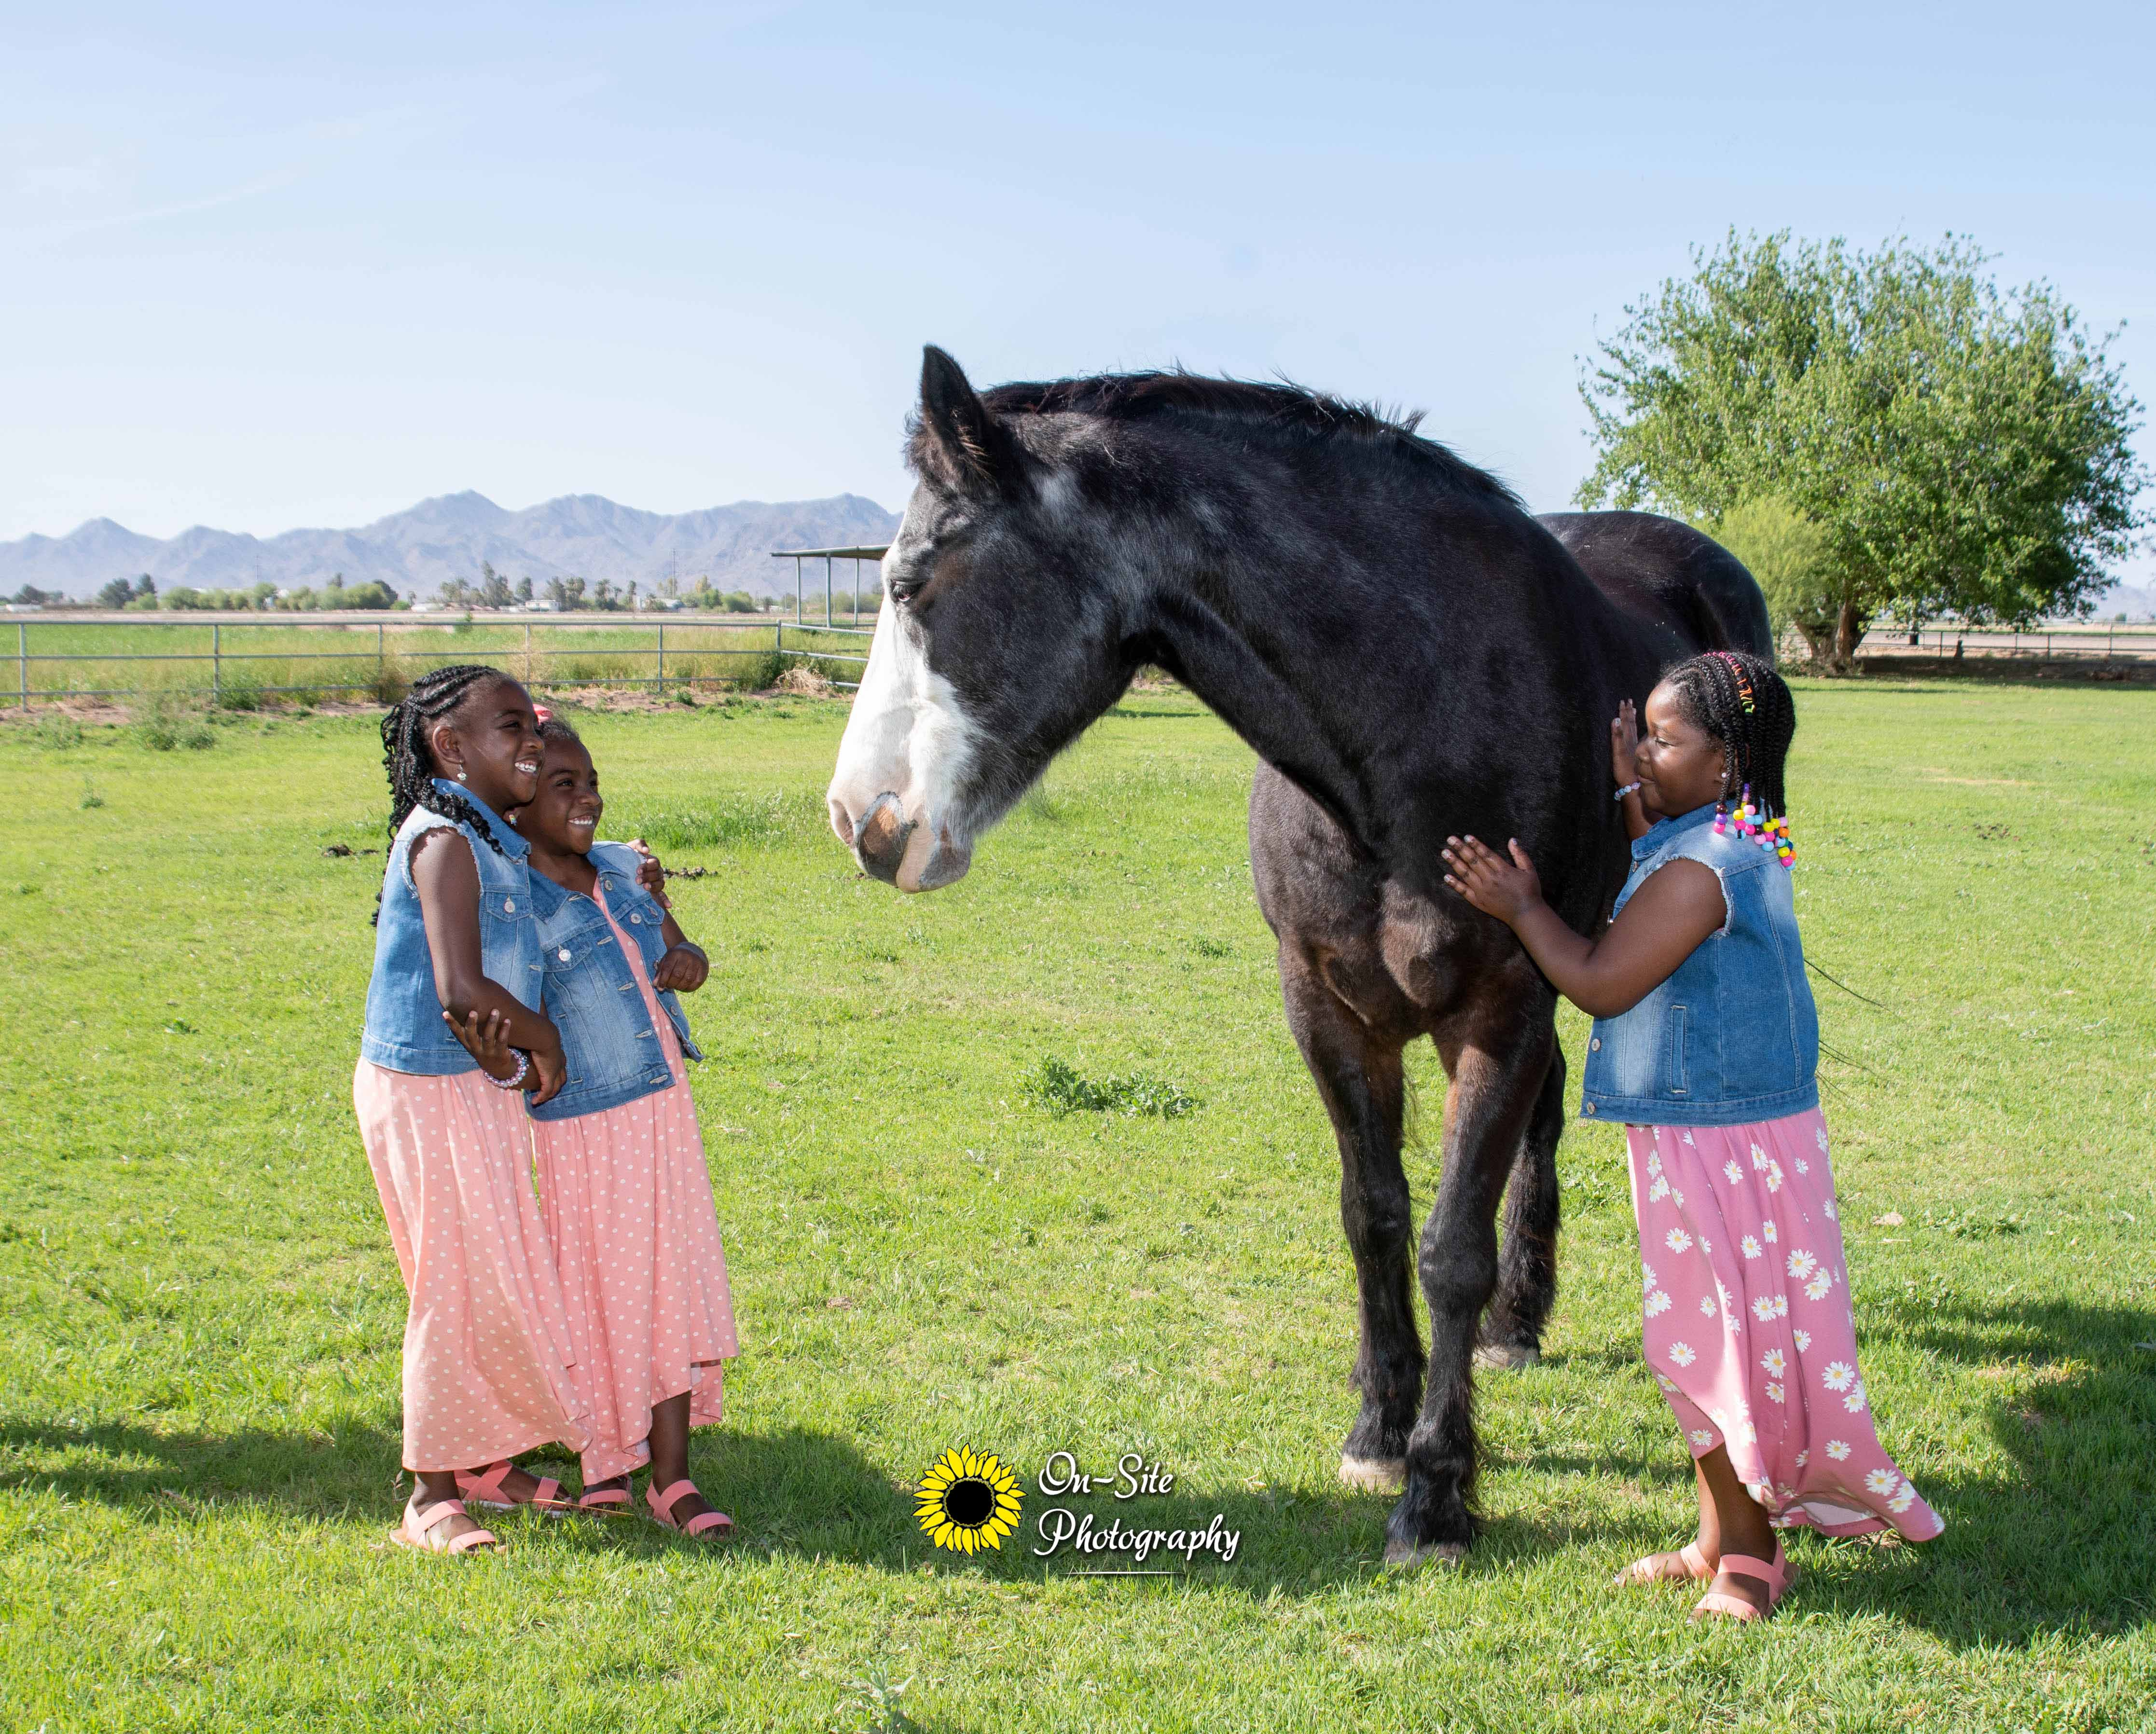 little girls with horse poses, children